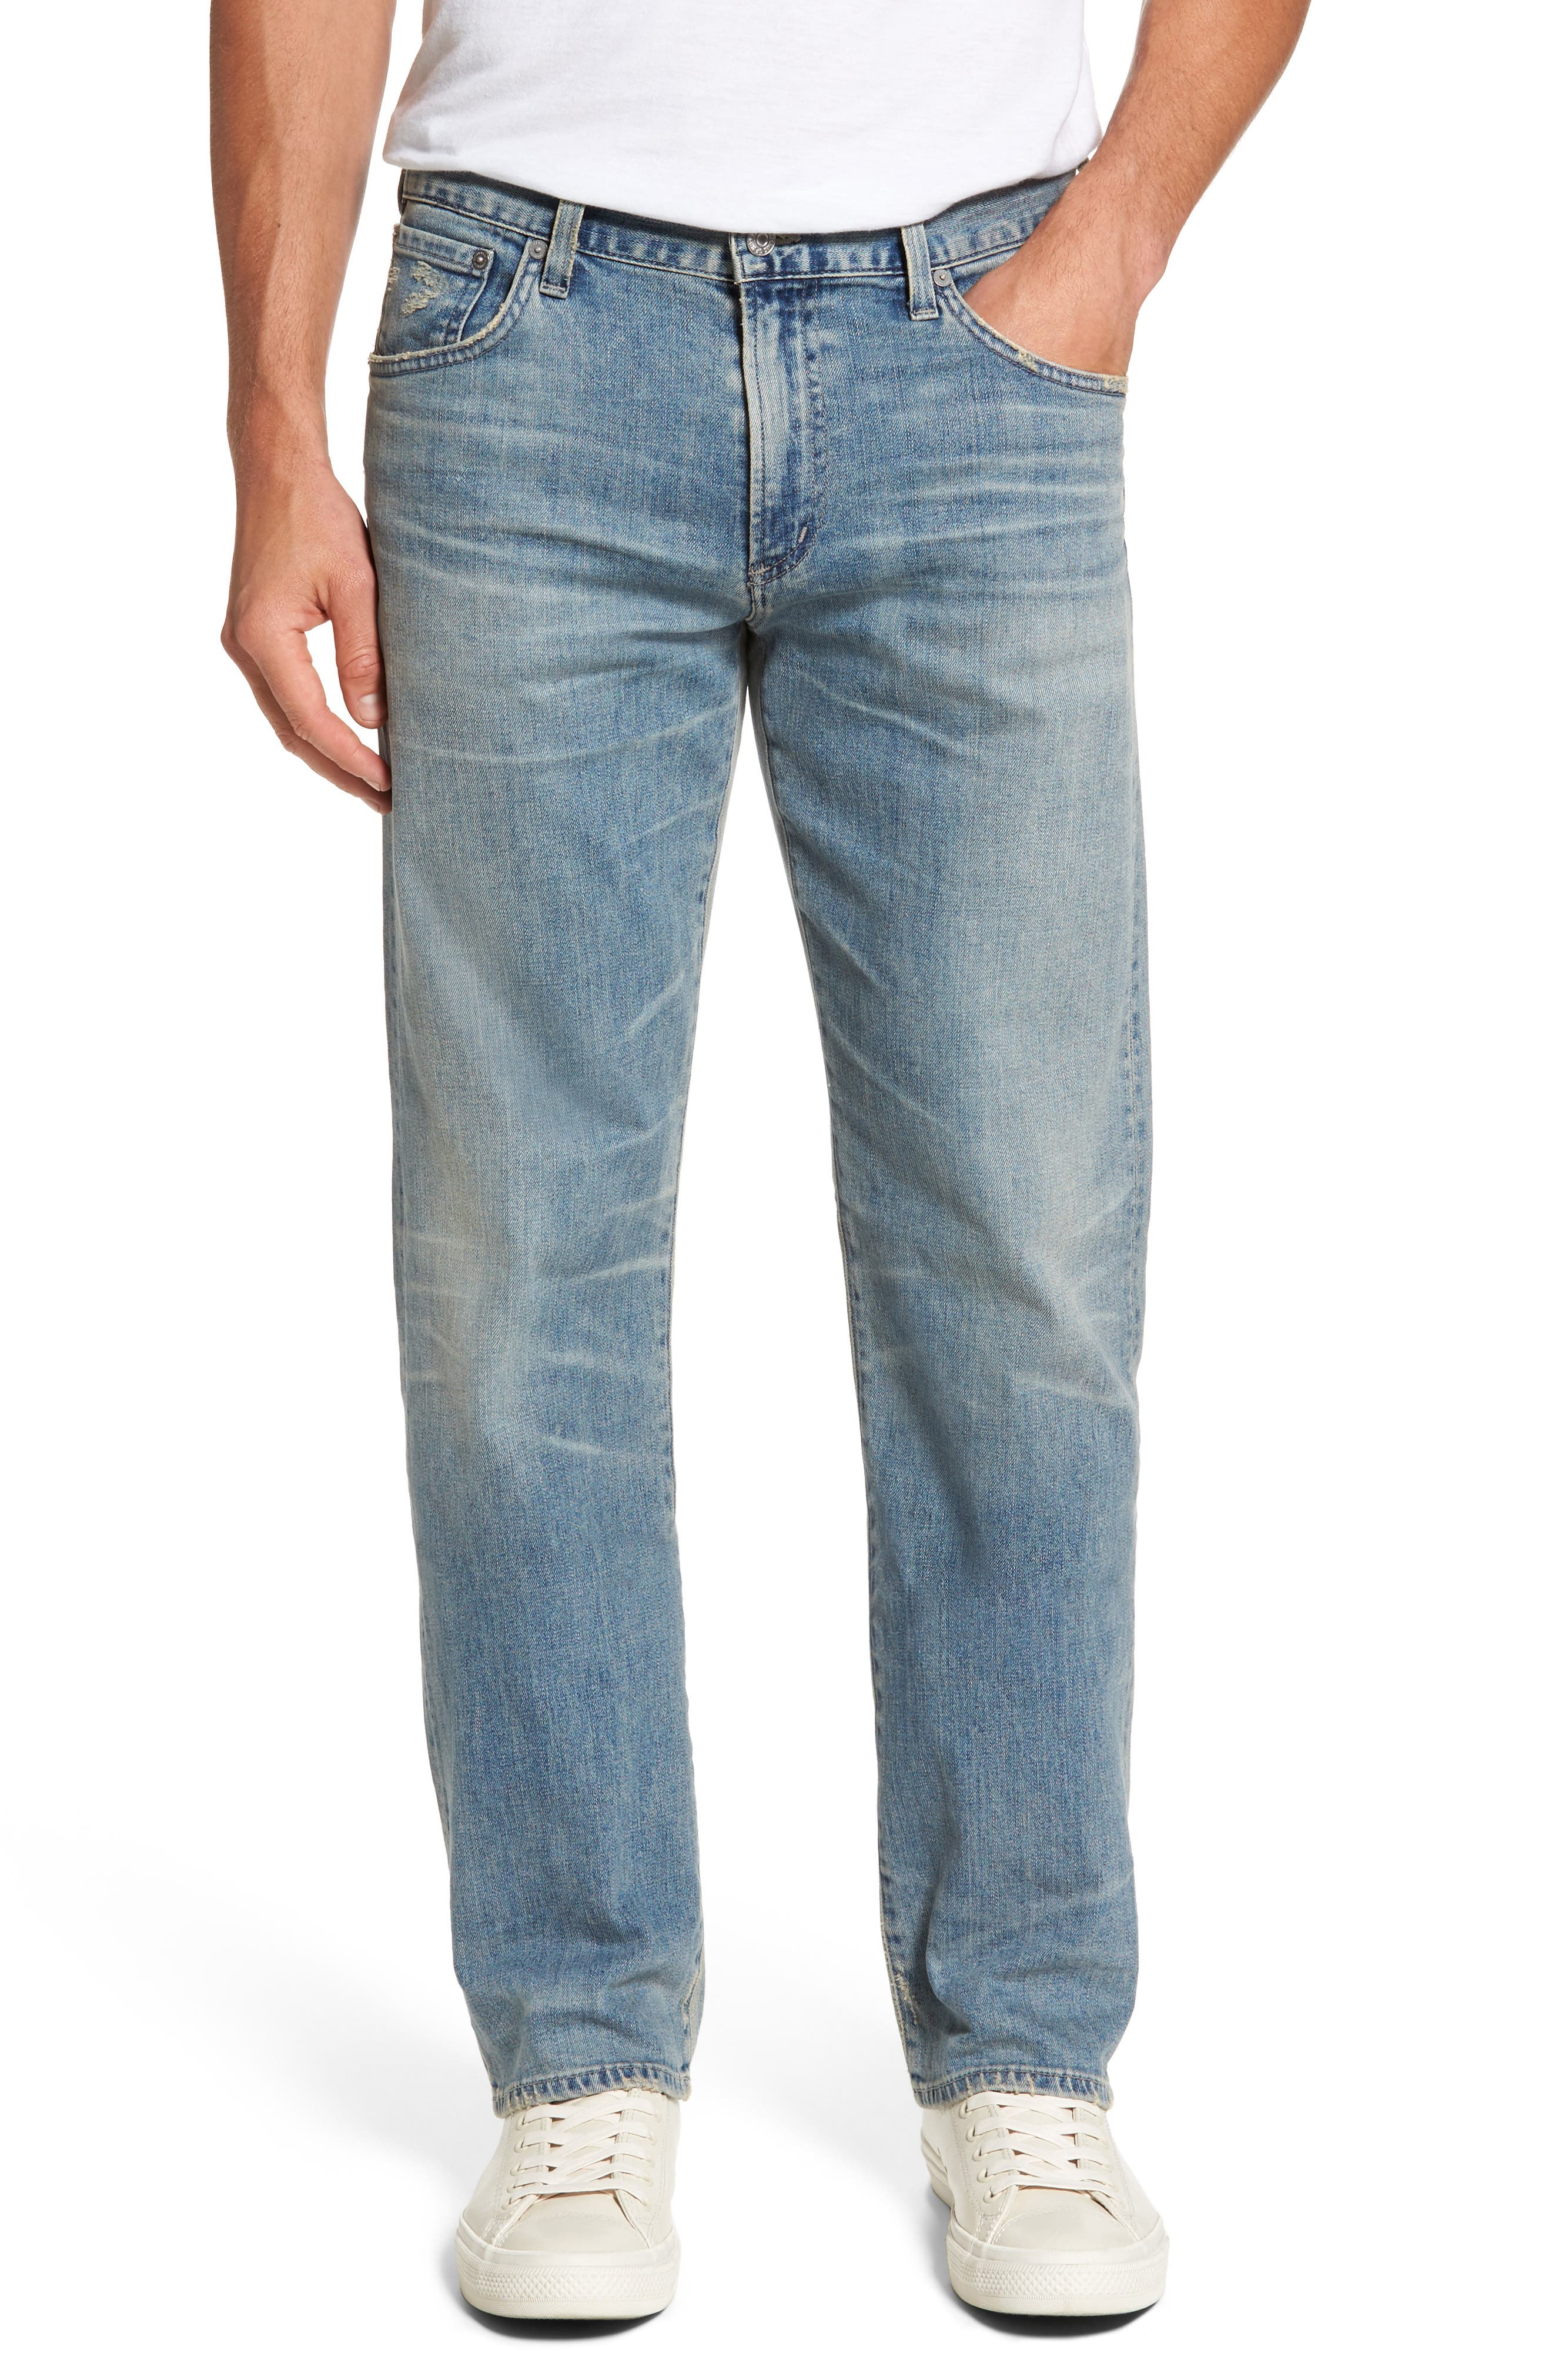 Alternate Image 1 Selected - Citizens of Humanity Sid Straight Leg Jeans (Anchor)